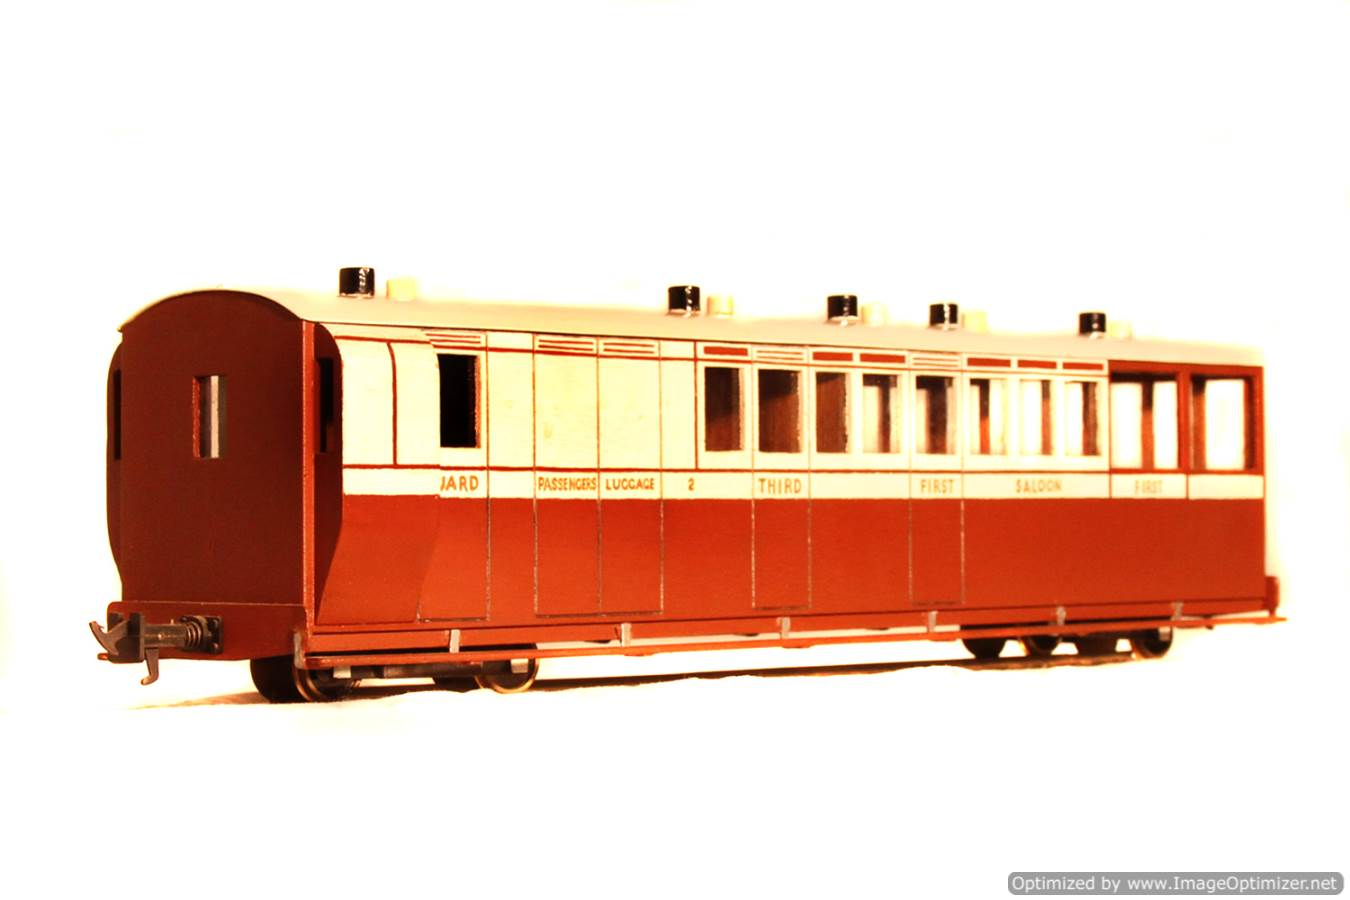 test L&B 32mm Garden Rail live steam locomotive carriages for sale 01 optimized